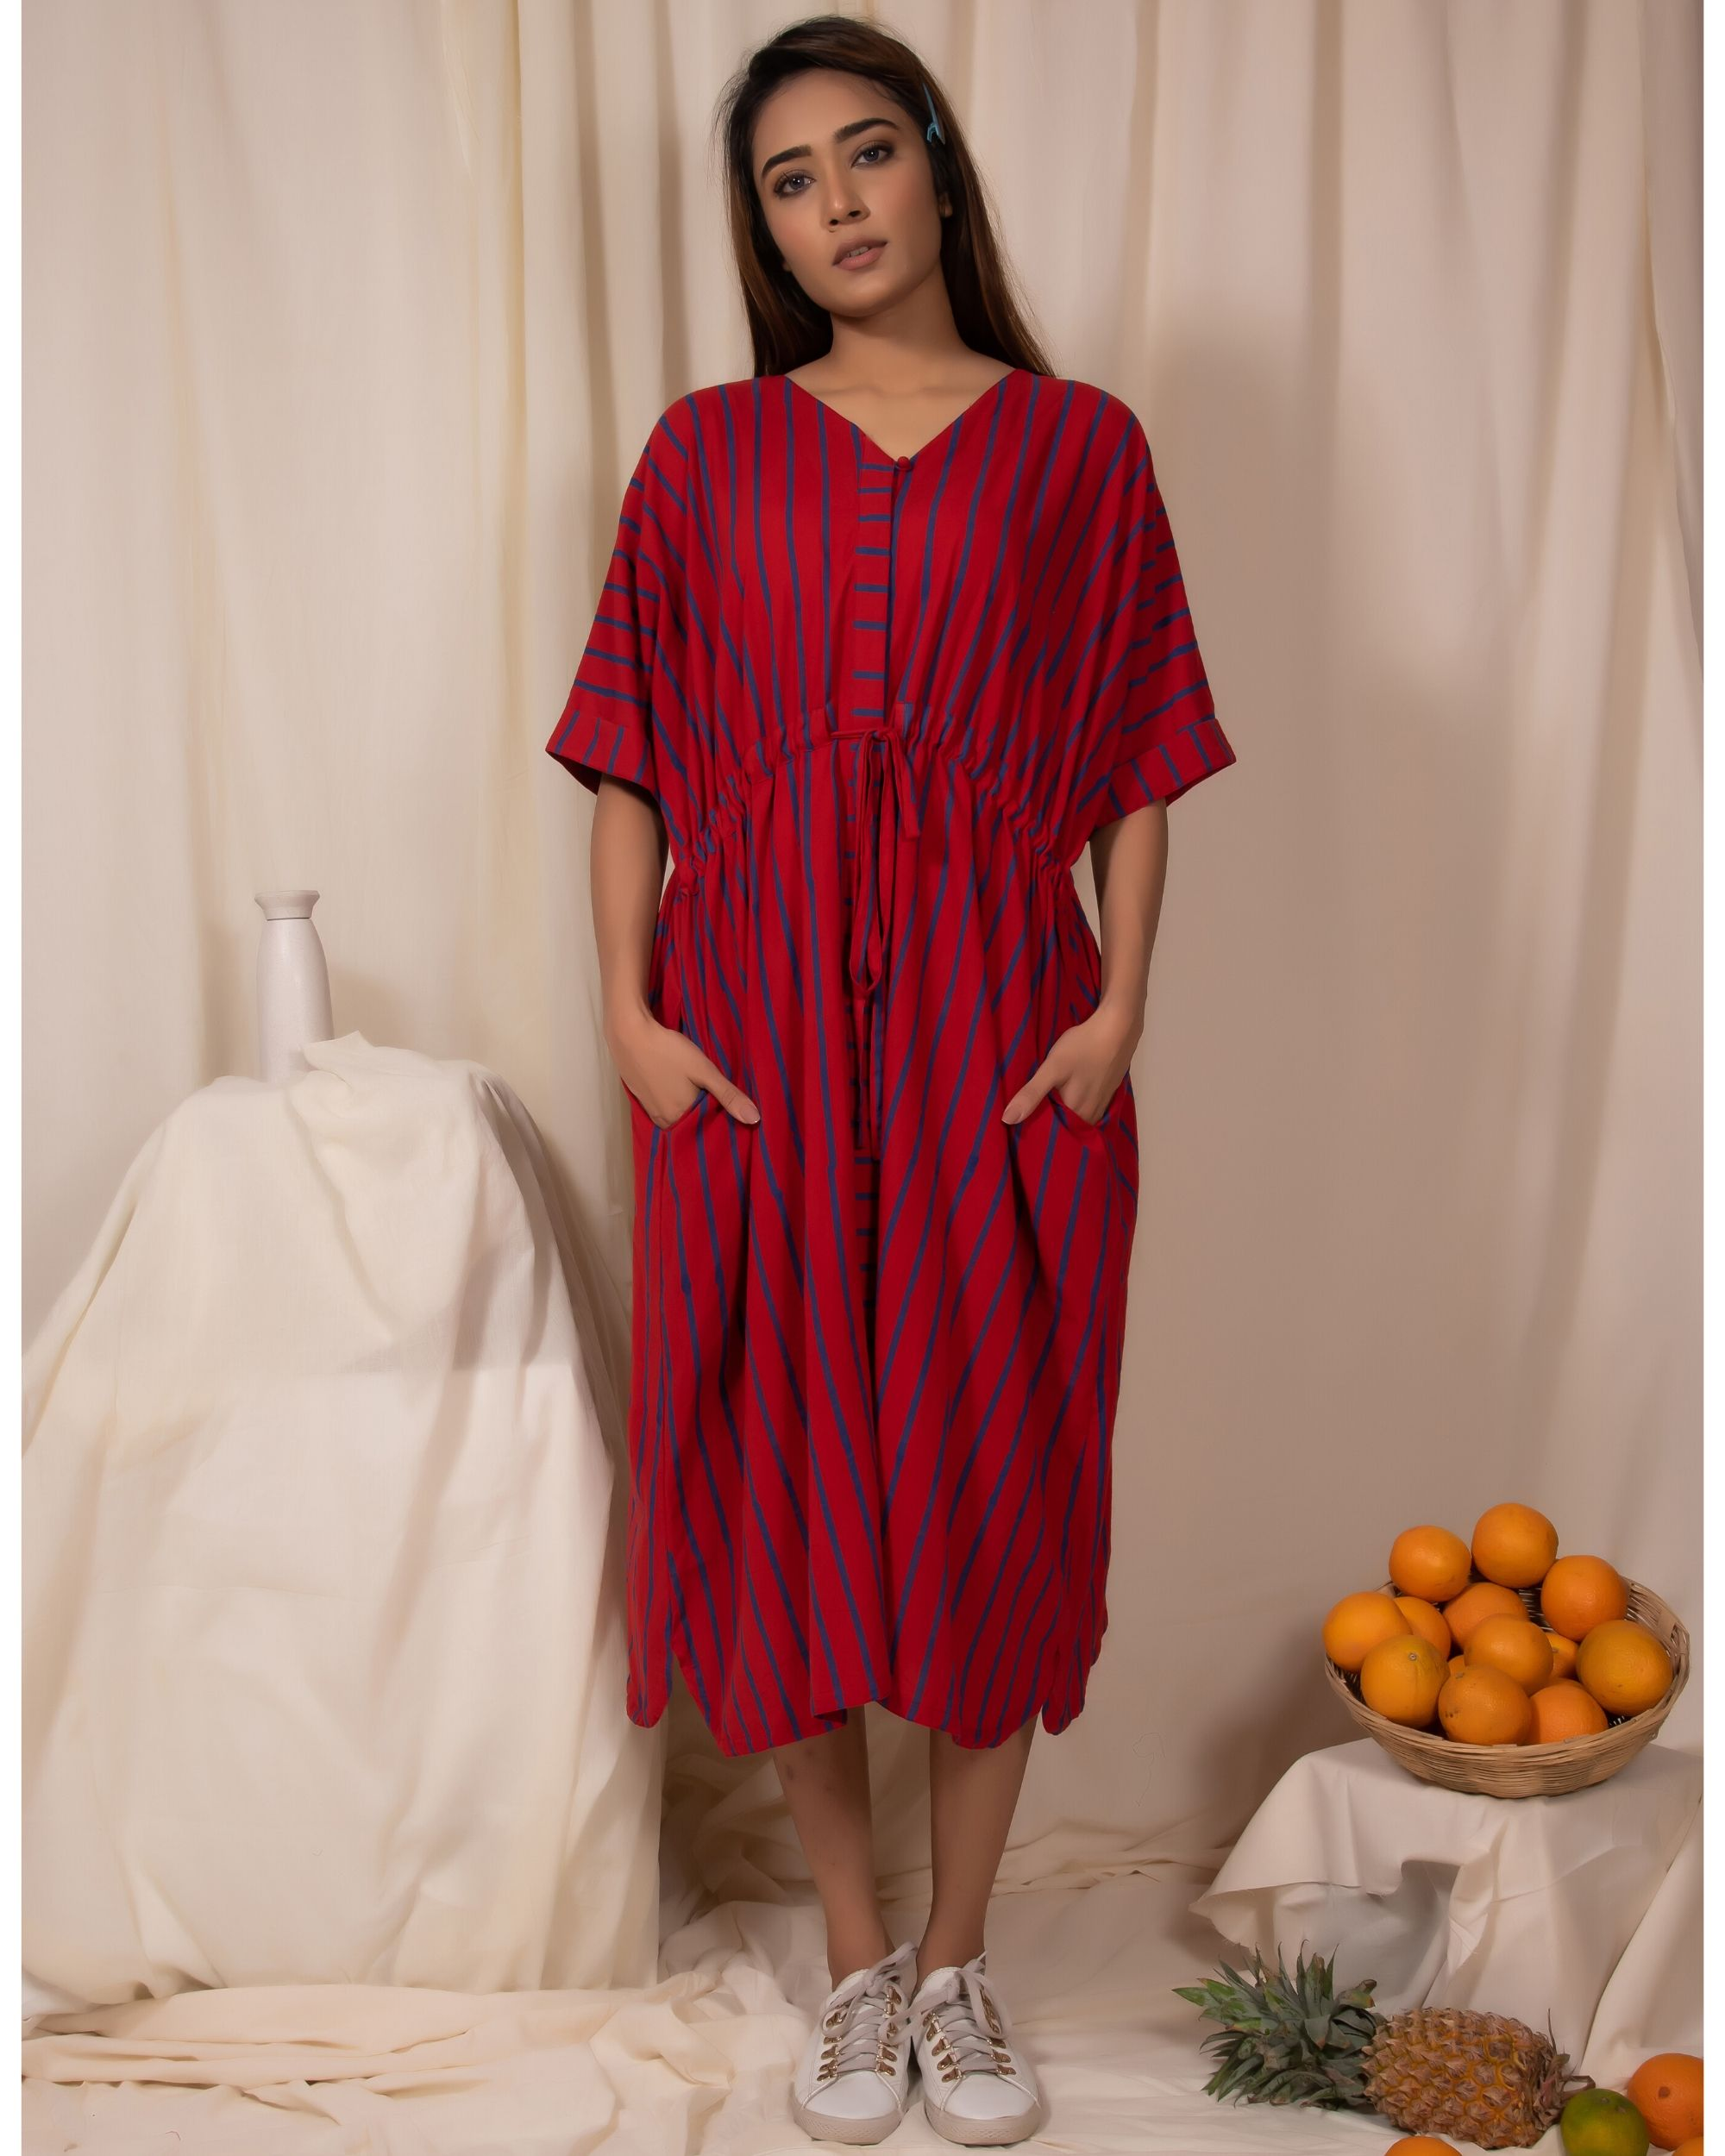 Red striped tie-up dress